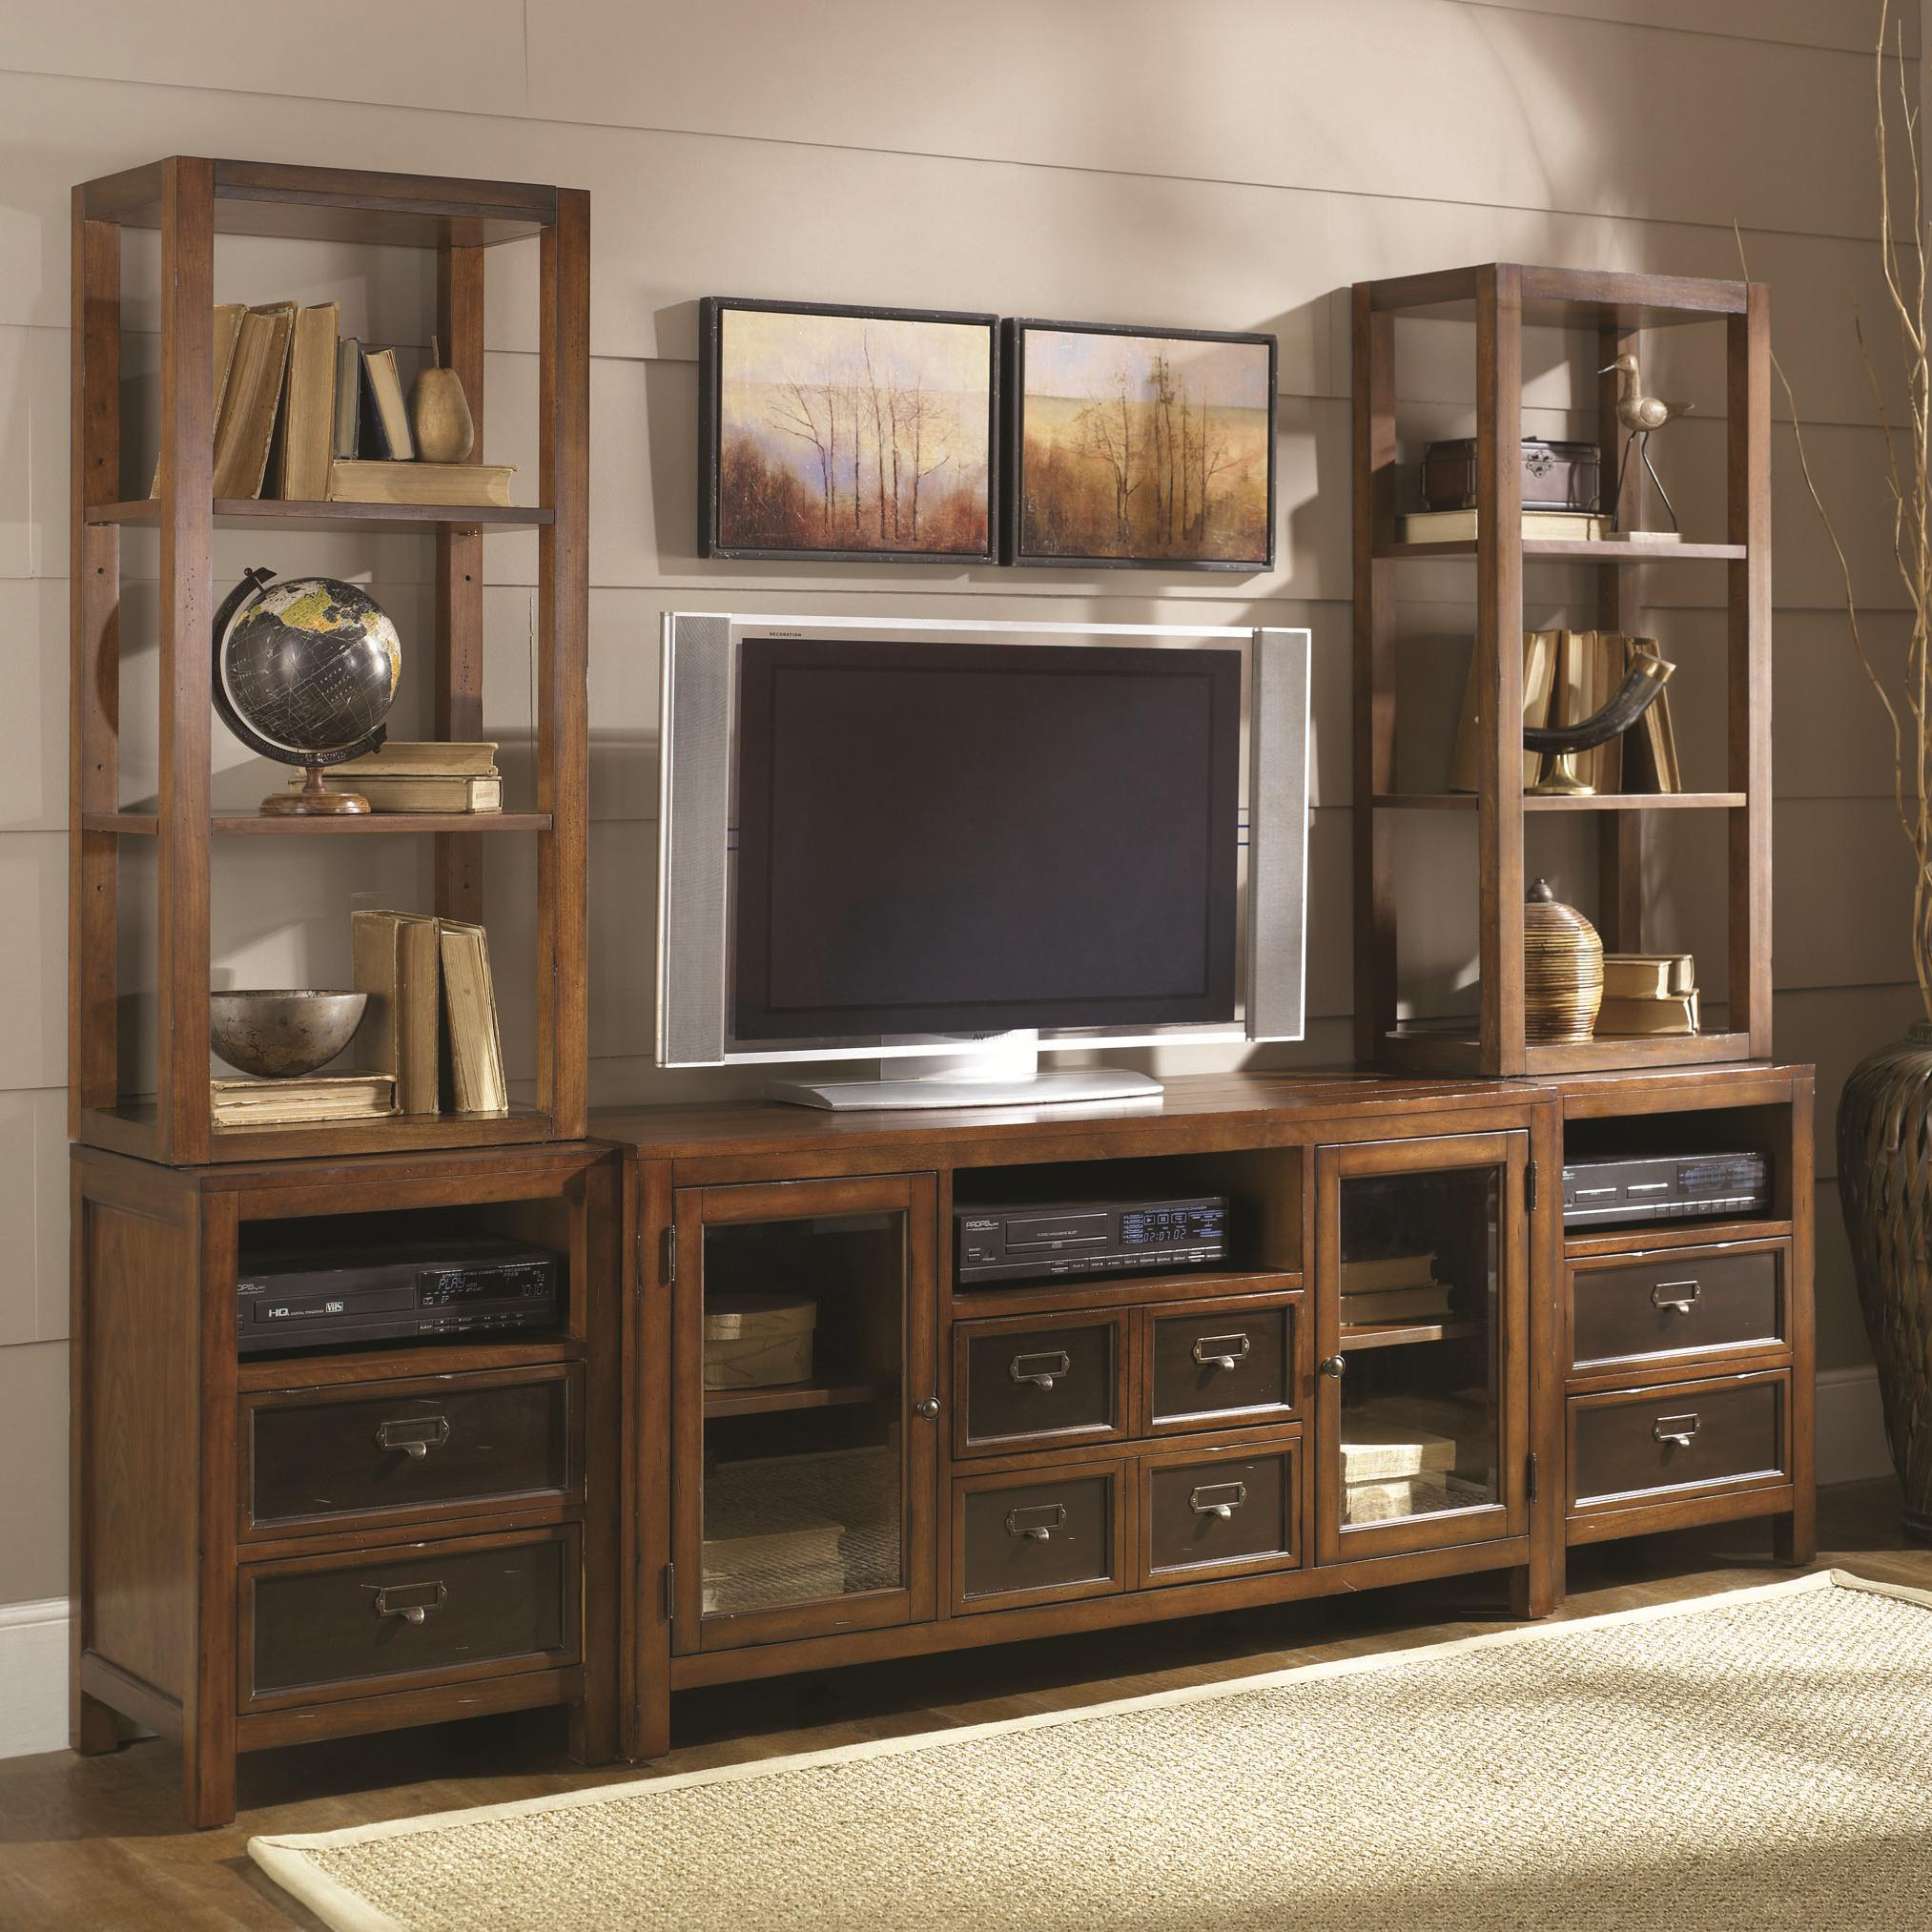 Six-Drawer Two-Door Entertainment Wall Unit with Shelving Storage ...